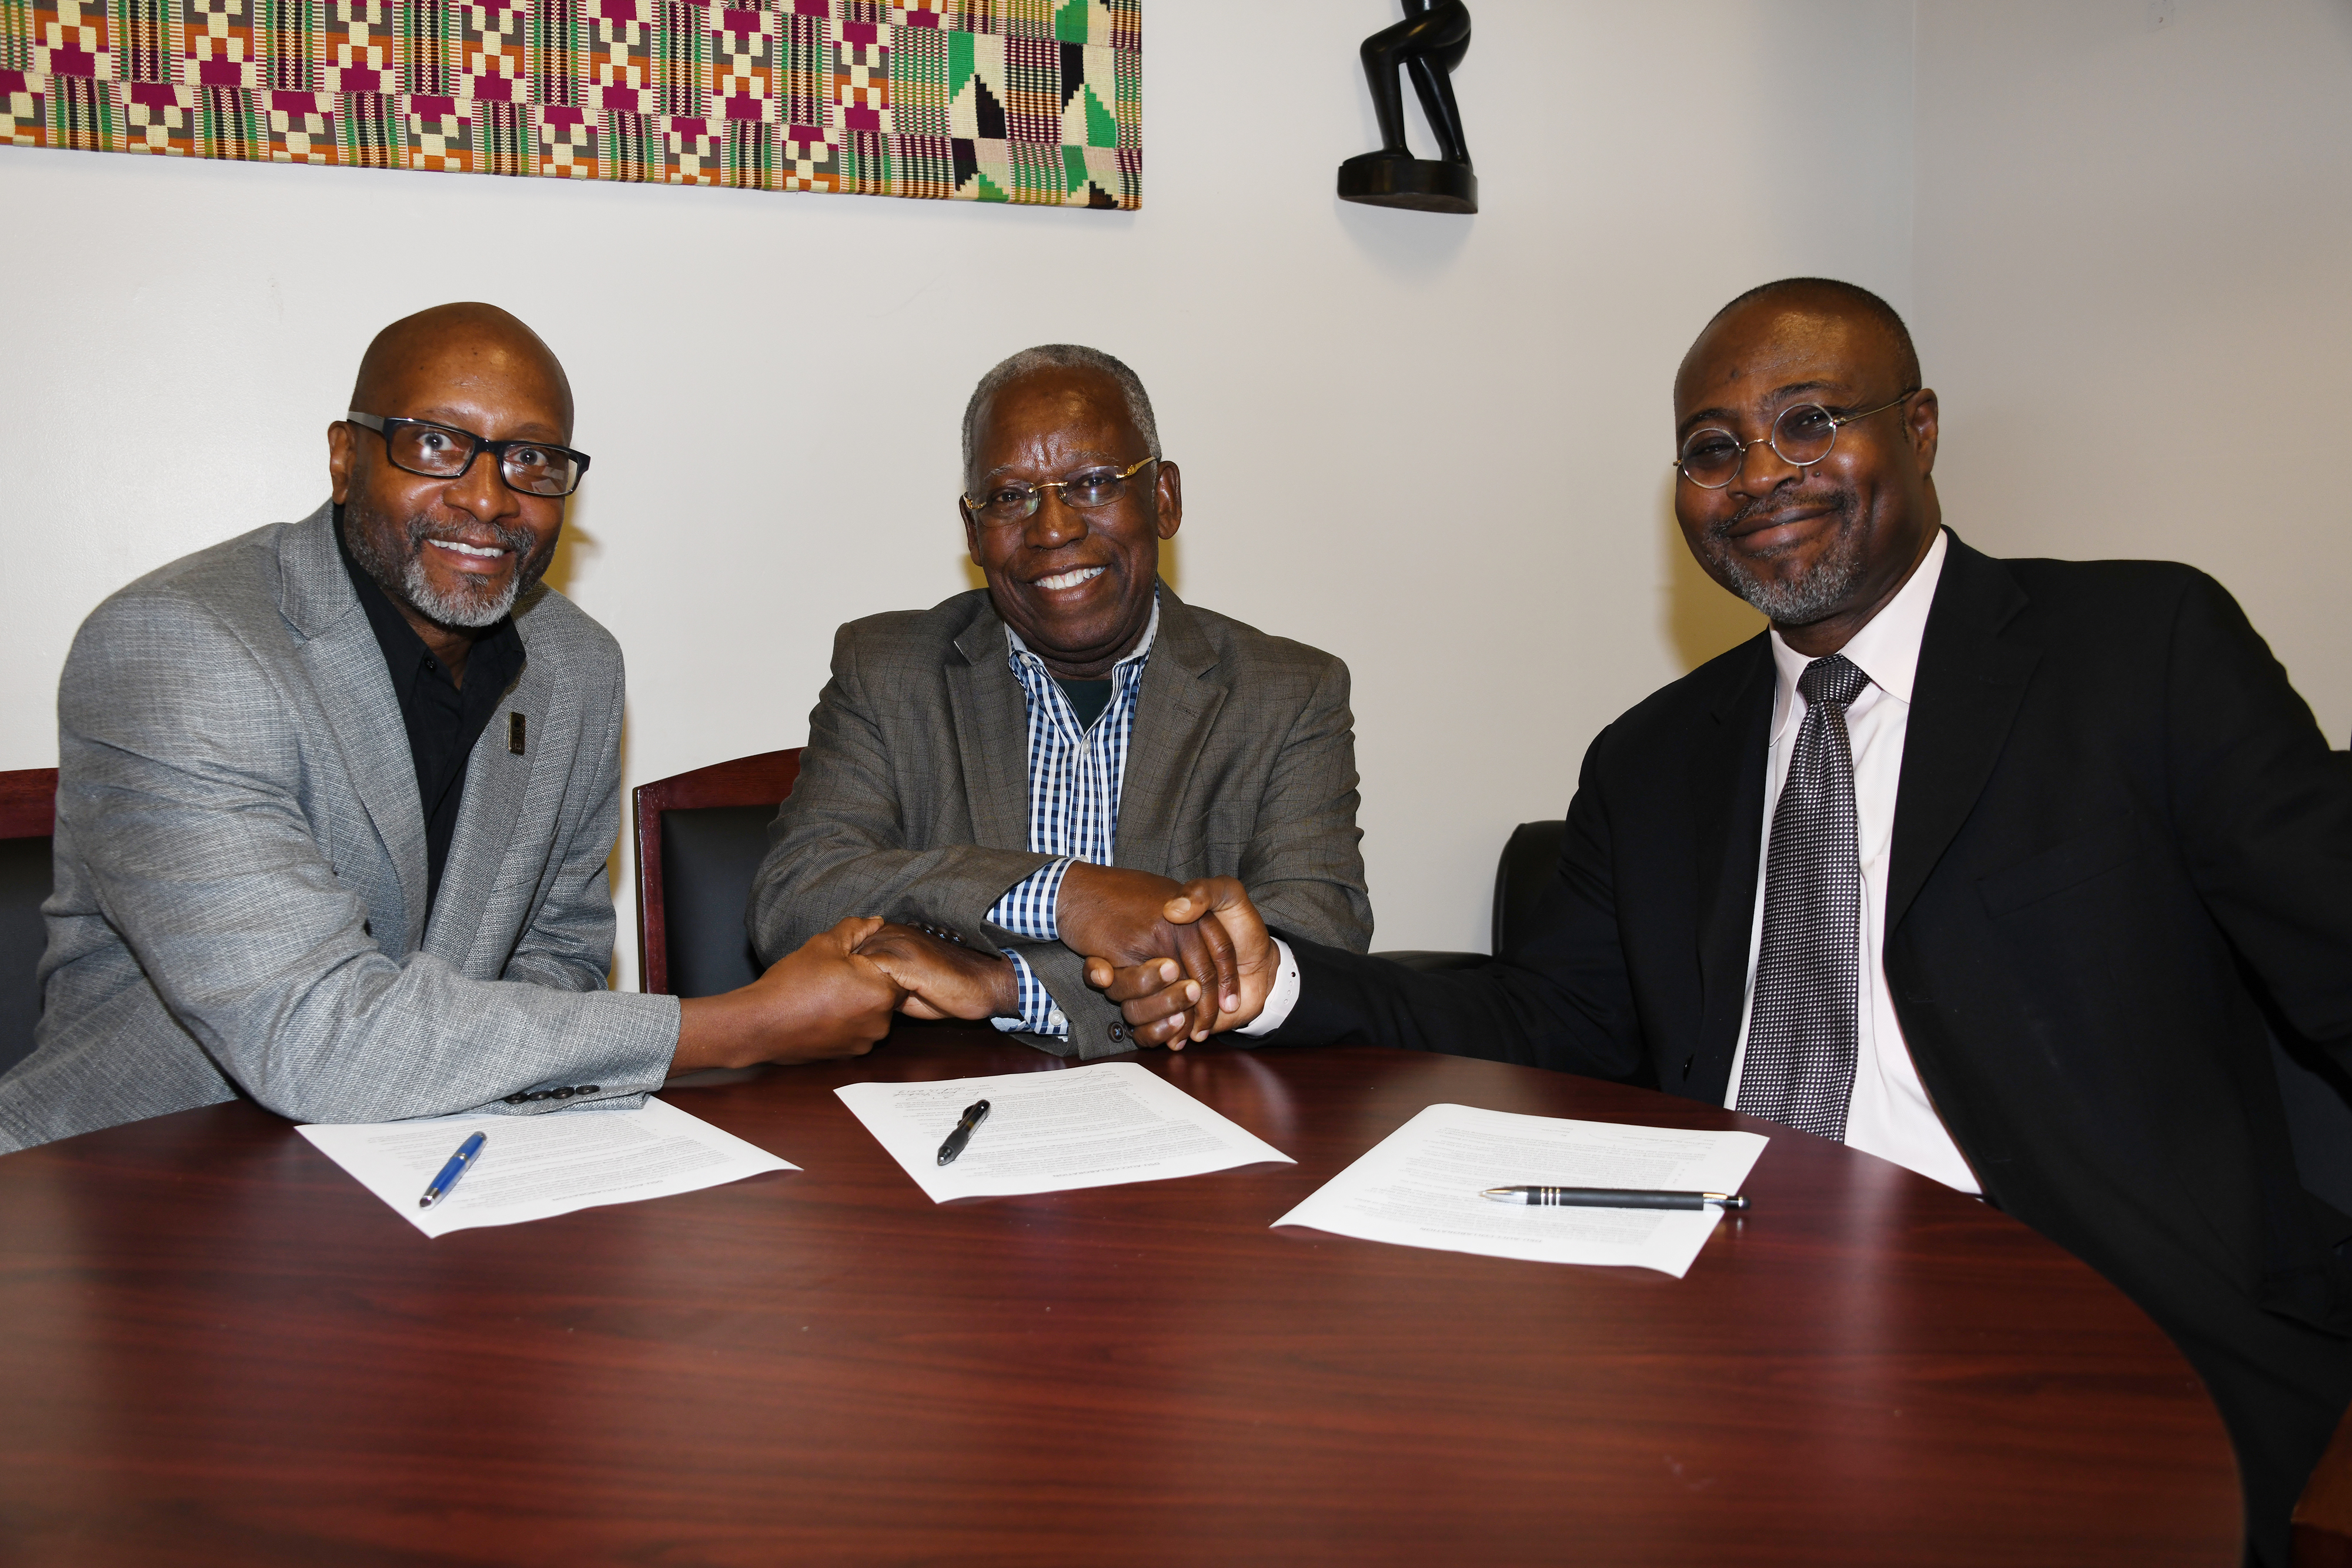 (L-r) Ezrah Aharone, director of the University's Center for Global Africa; Kojo Yankah, founder of the African University College of Communications in Ghana; and Dr. Akwasi Osei, associate dean of the College of Humanities, Education and Social Sciences, shake hands after signing a collaboration agreement between the two institutions.